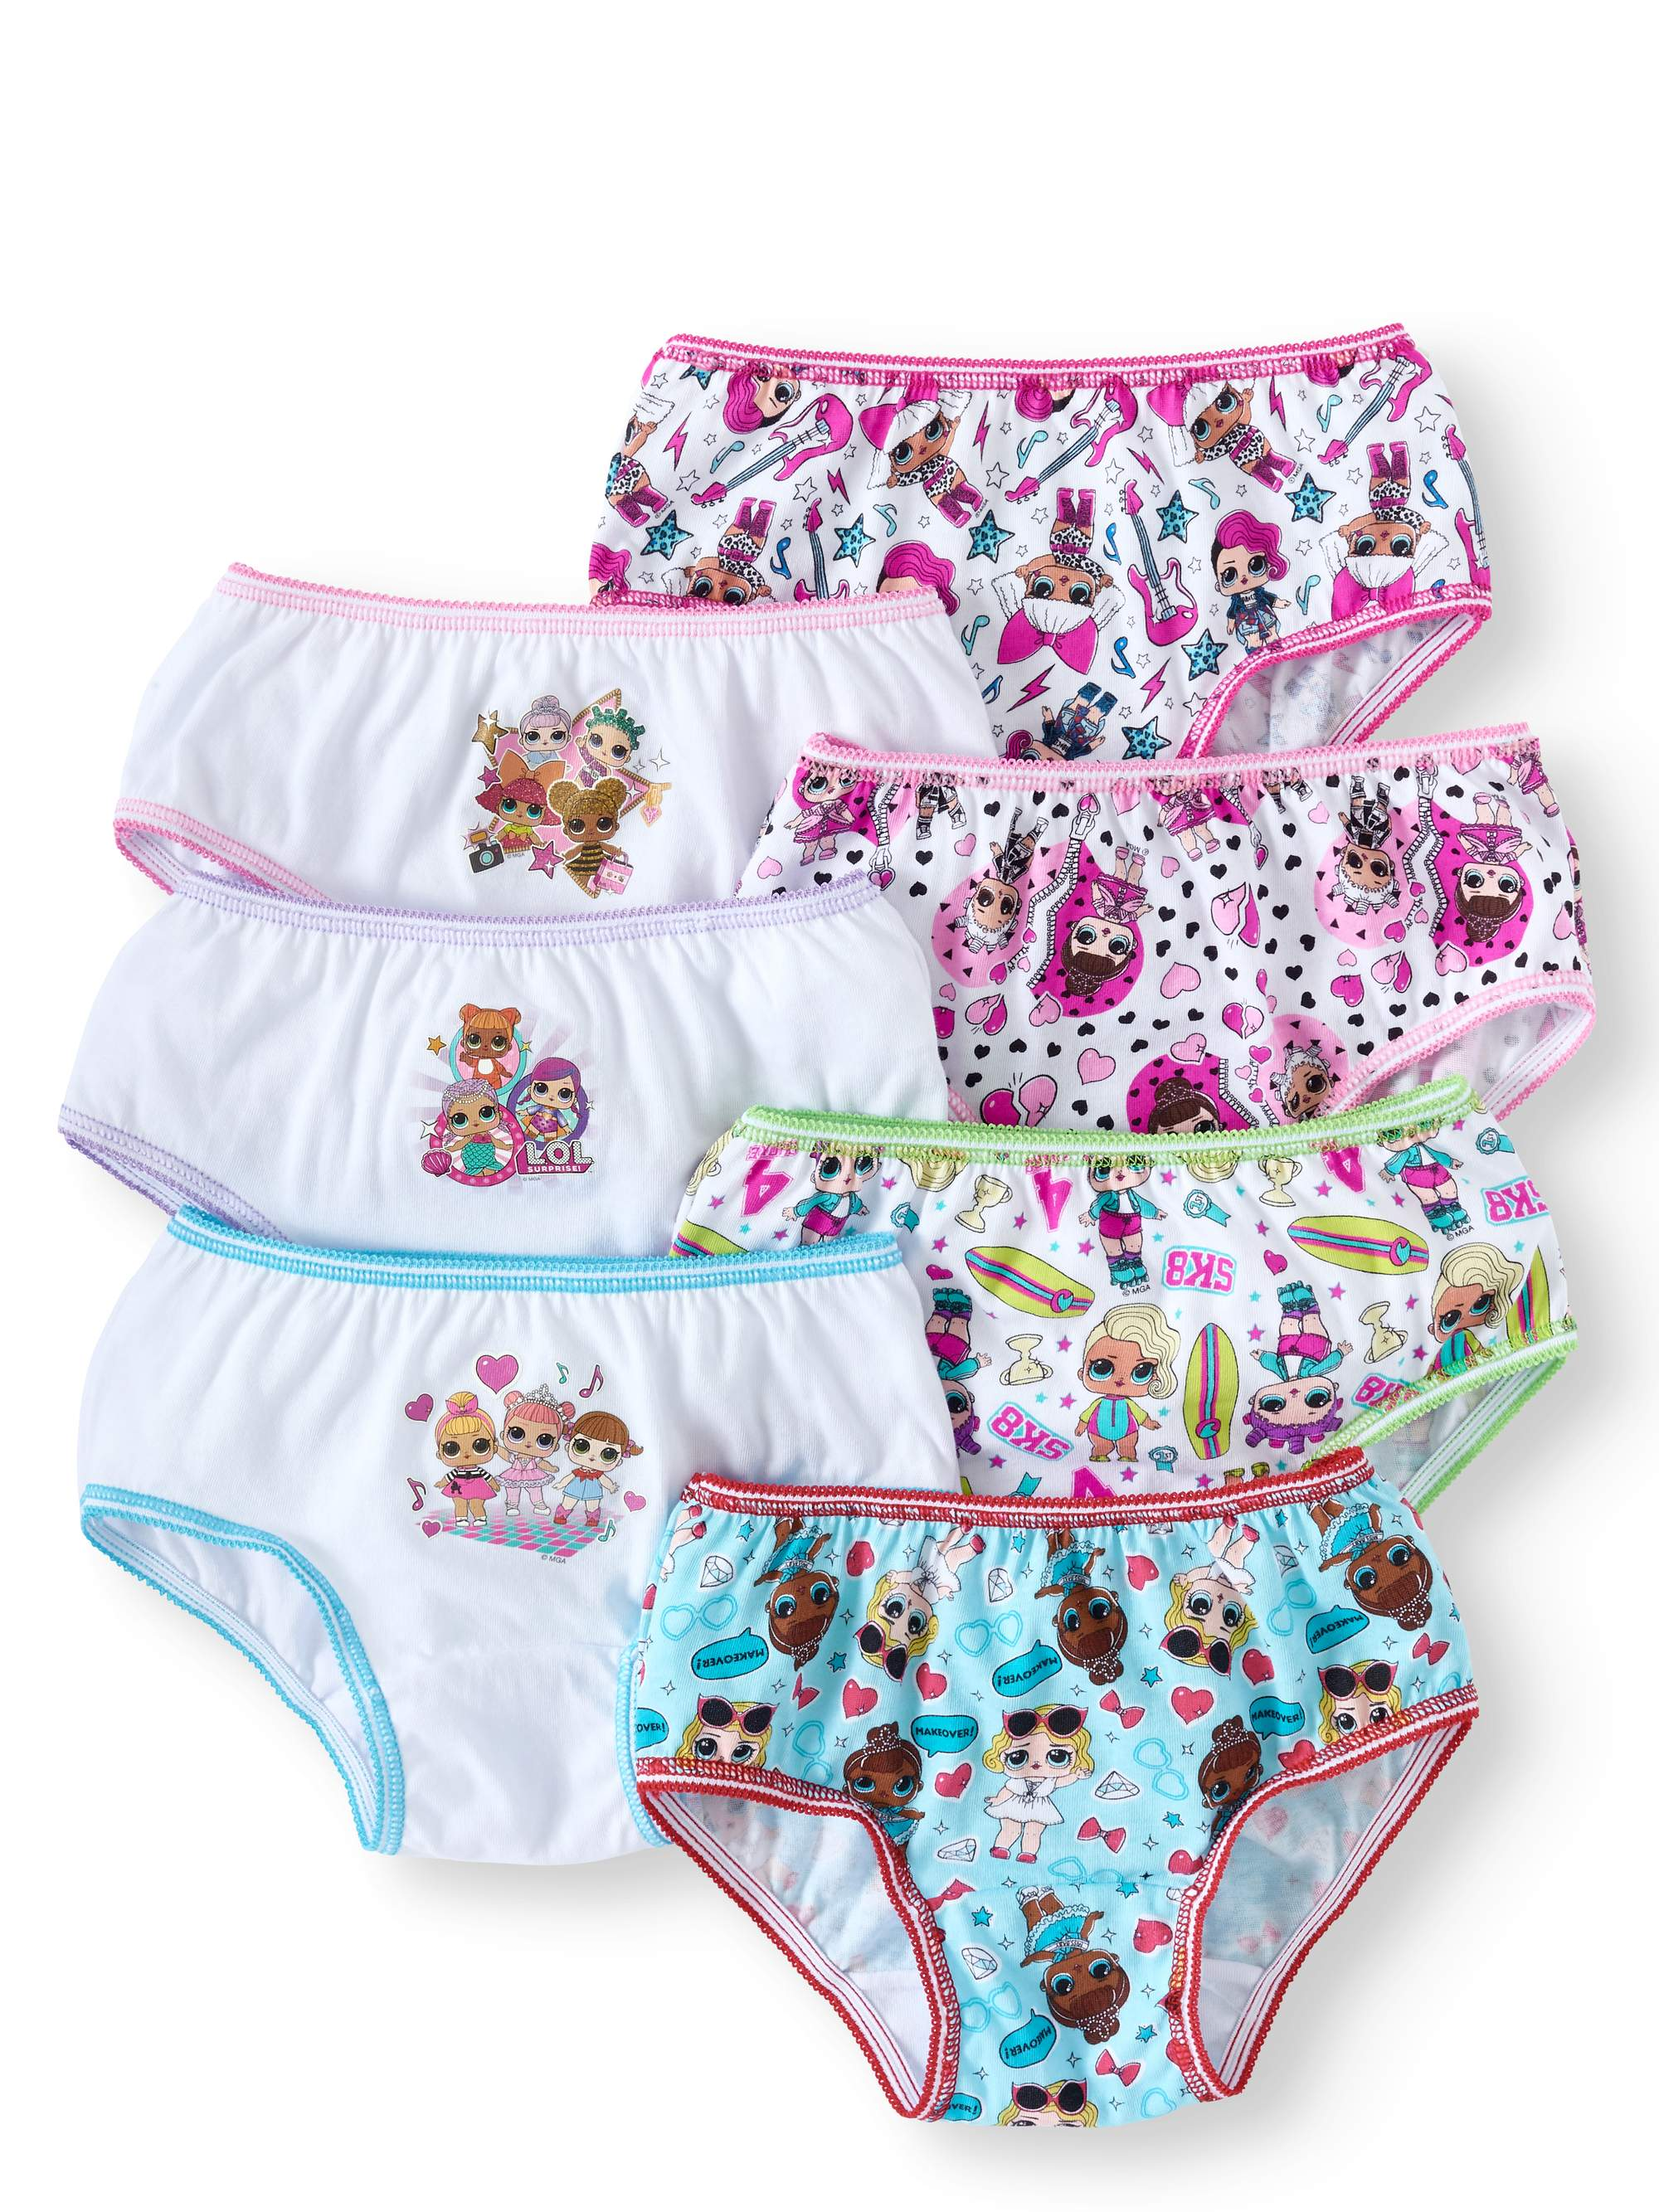 L.O.L. Surprise! Girls Underwear, 7 Pack Brief Panties Sizes 4 - 8